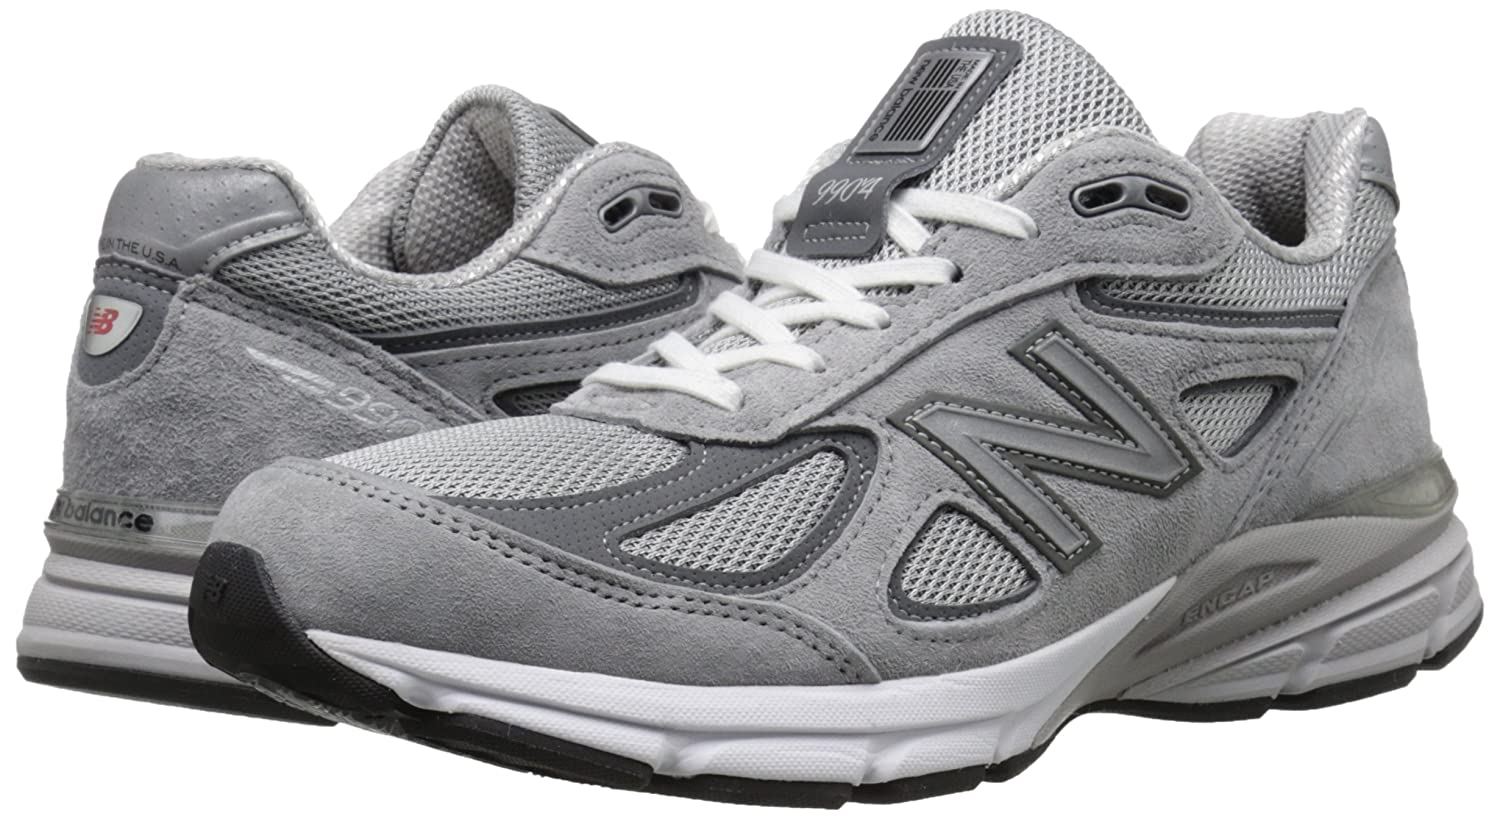 New-Balance-990-990v4-Classicc-Retro-Fashion-Sneaker-Made-in-USA thumbnail 69